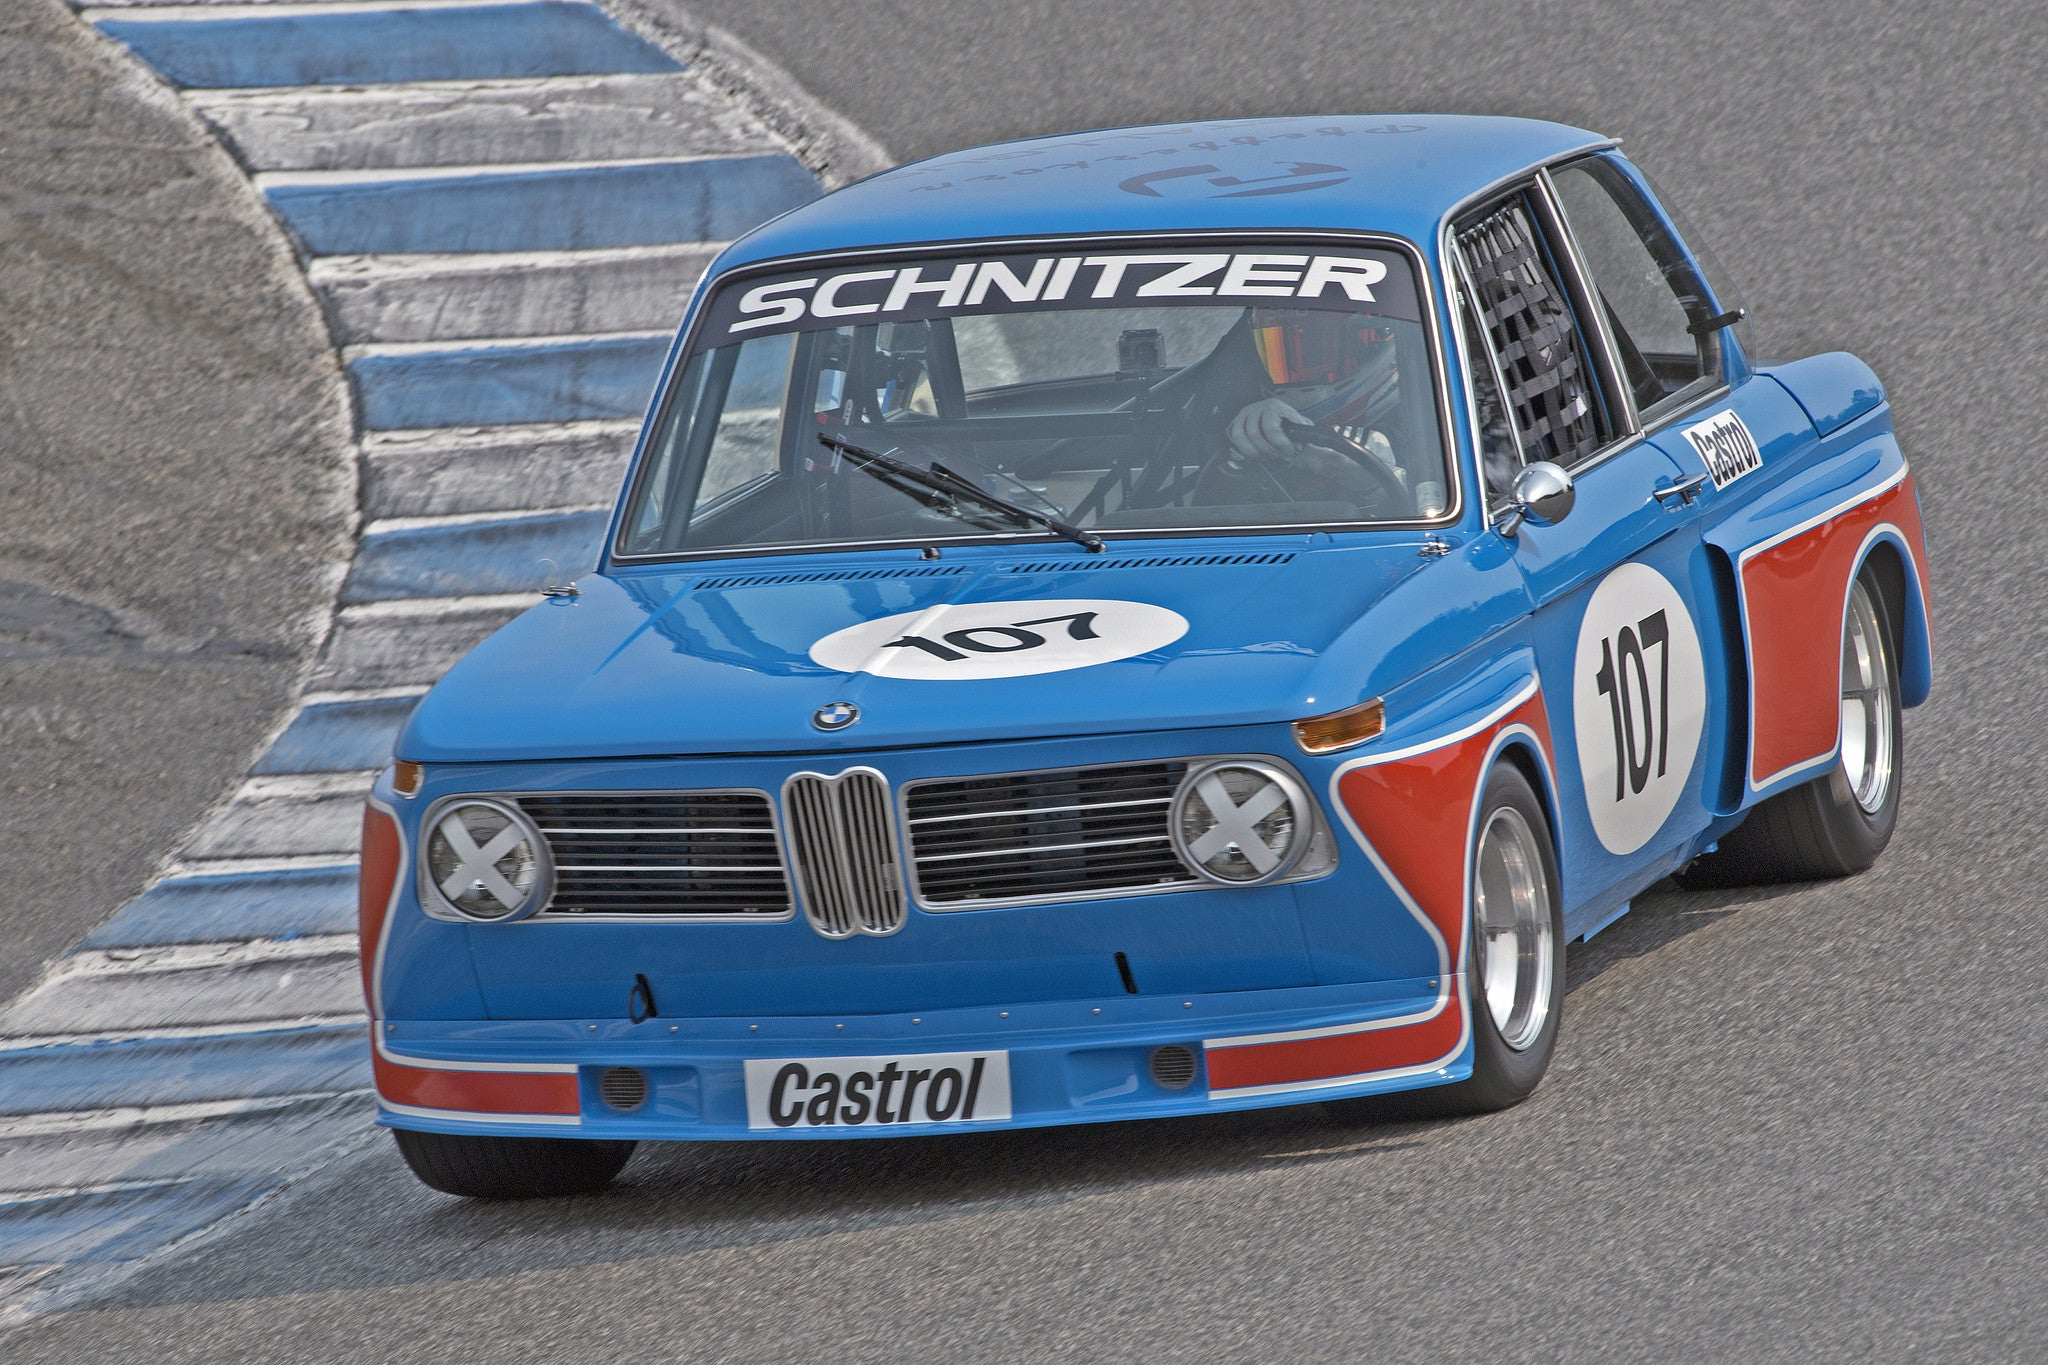 Billy Glavin - 1968 BMW 2002 in Group 3B  at the 2016 Rolex Monterey Motorsport Reunion - Mazda Raceway Laguna Seca